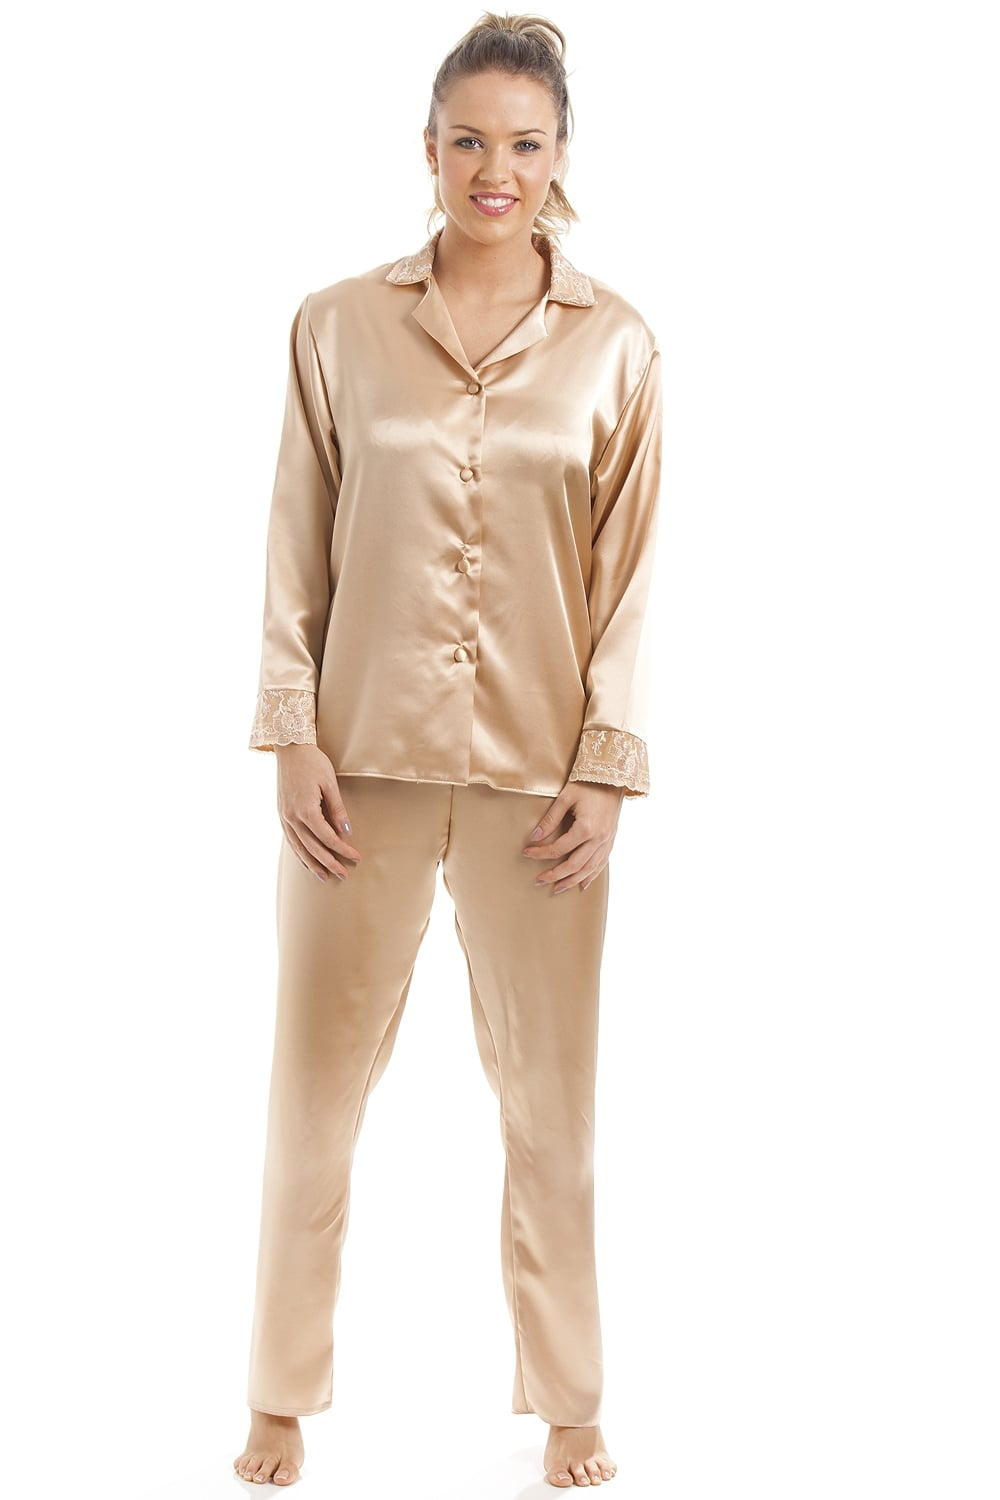 You searched for: satin pyjama set! Etsy is the home to thousands of handmade, vintage, and one-of-a-kind products and gifts related to your search. No matter what you're looking for or where you are in the world, our global marketplace of sellers can help you find unique and affordable options.